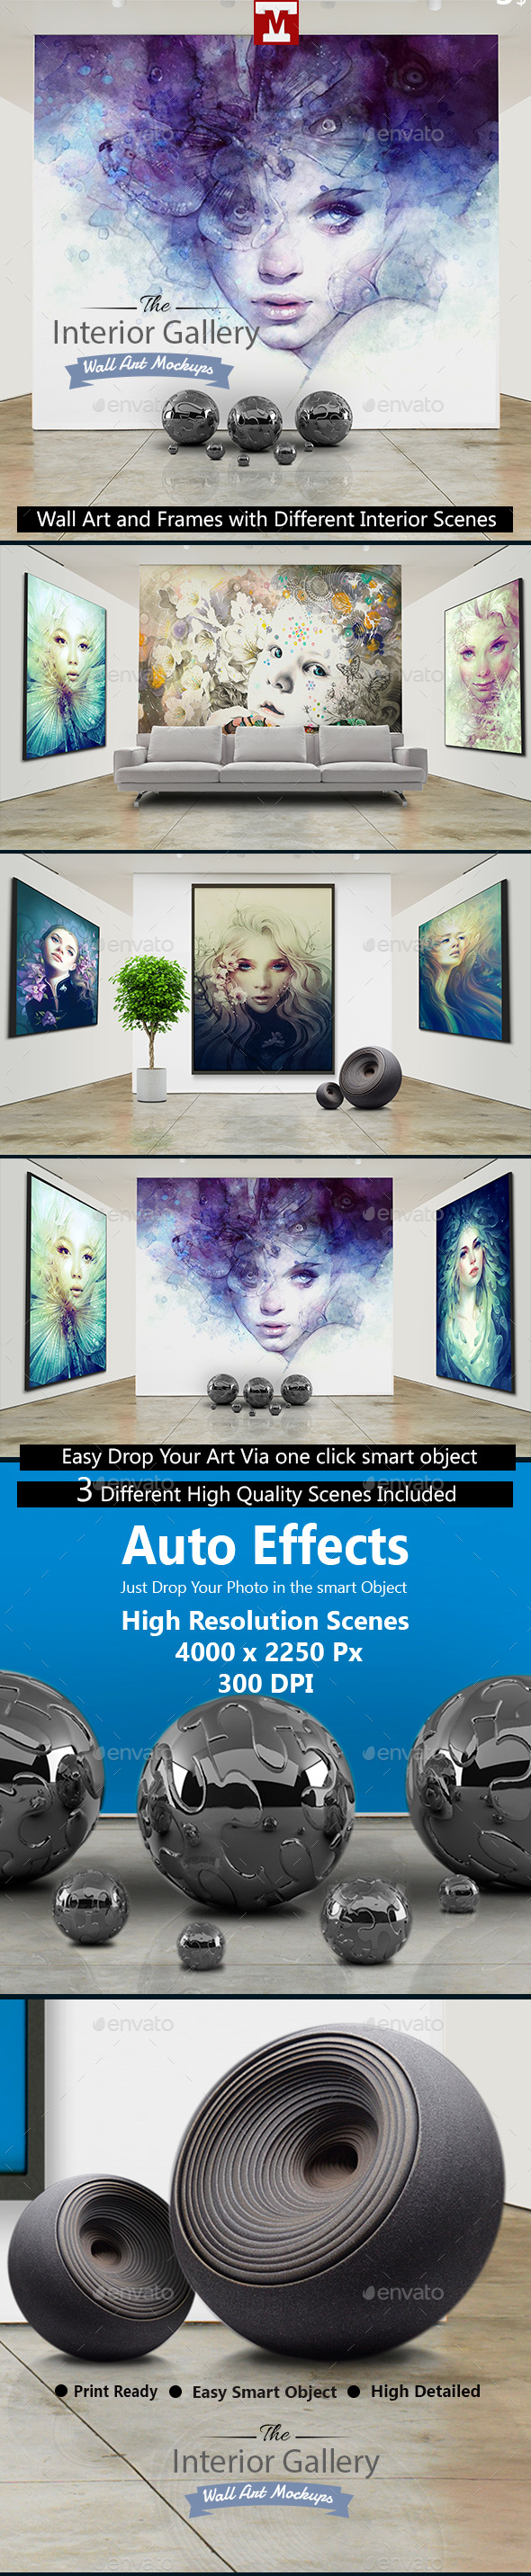 Interior Gallery - Wall Art and Frames Mockups - Miscellaneous Displays